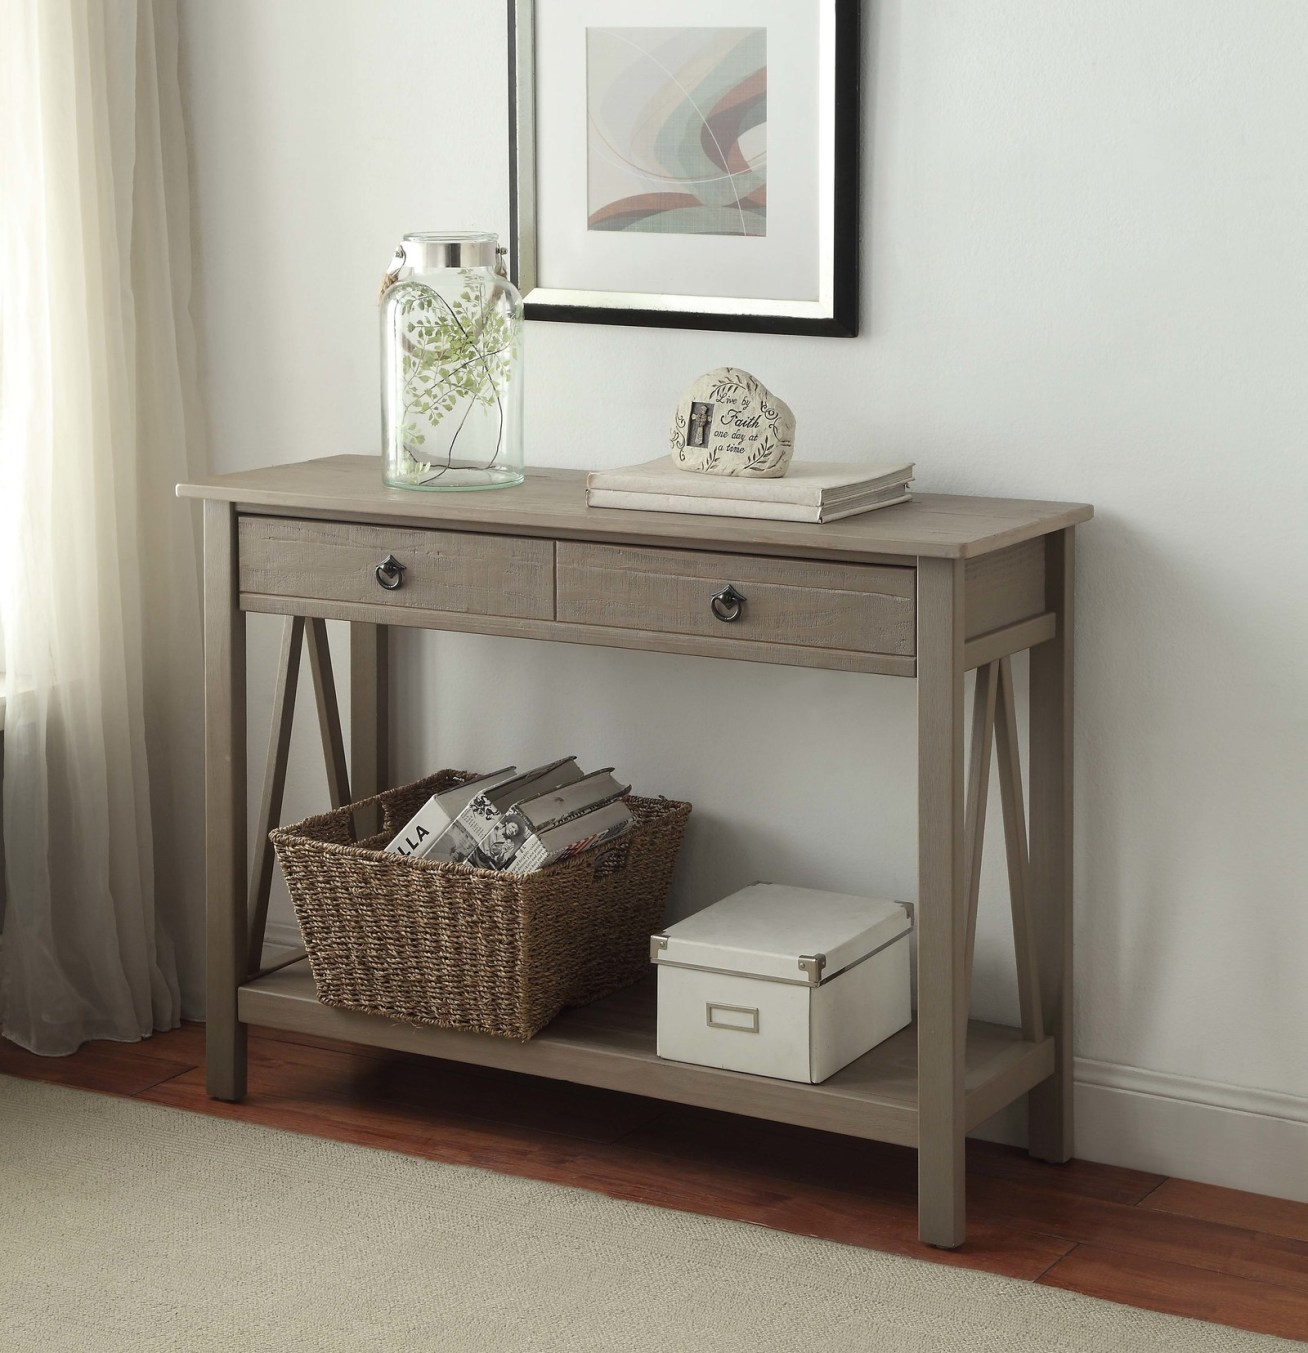 "Promising review: ""This is a great entry/sofa table, and the price was a steal!! The size was perfect for my semi-narrow entryway — just what I've been looking for. The table was very easy to put together. The table did come with a visual diagram with everything numbered and it was very easy to follow. The table looks like I paid several hundred dollars for it."" —cardsfan1Price: 0"